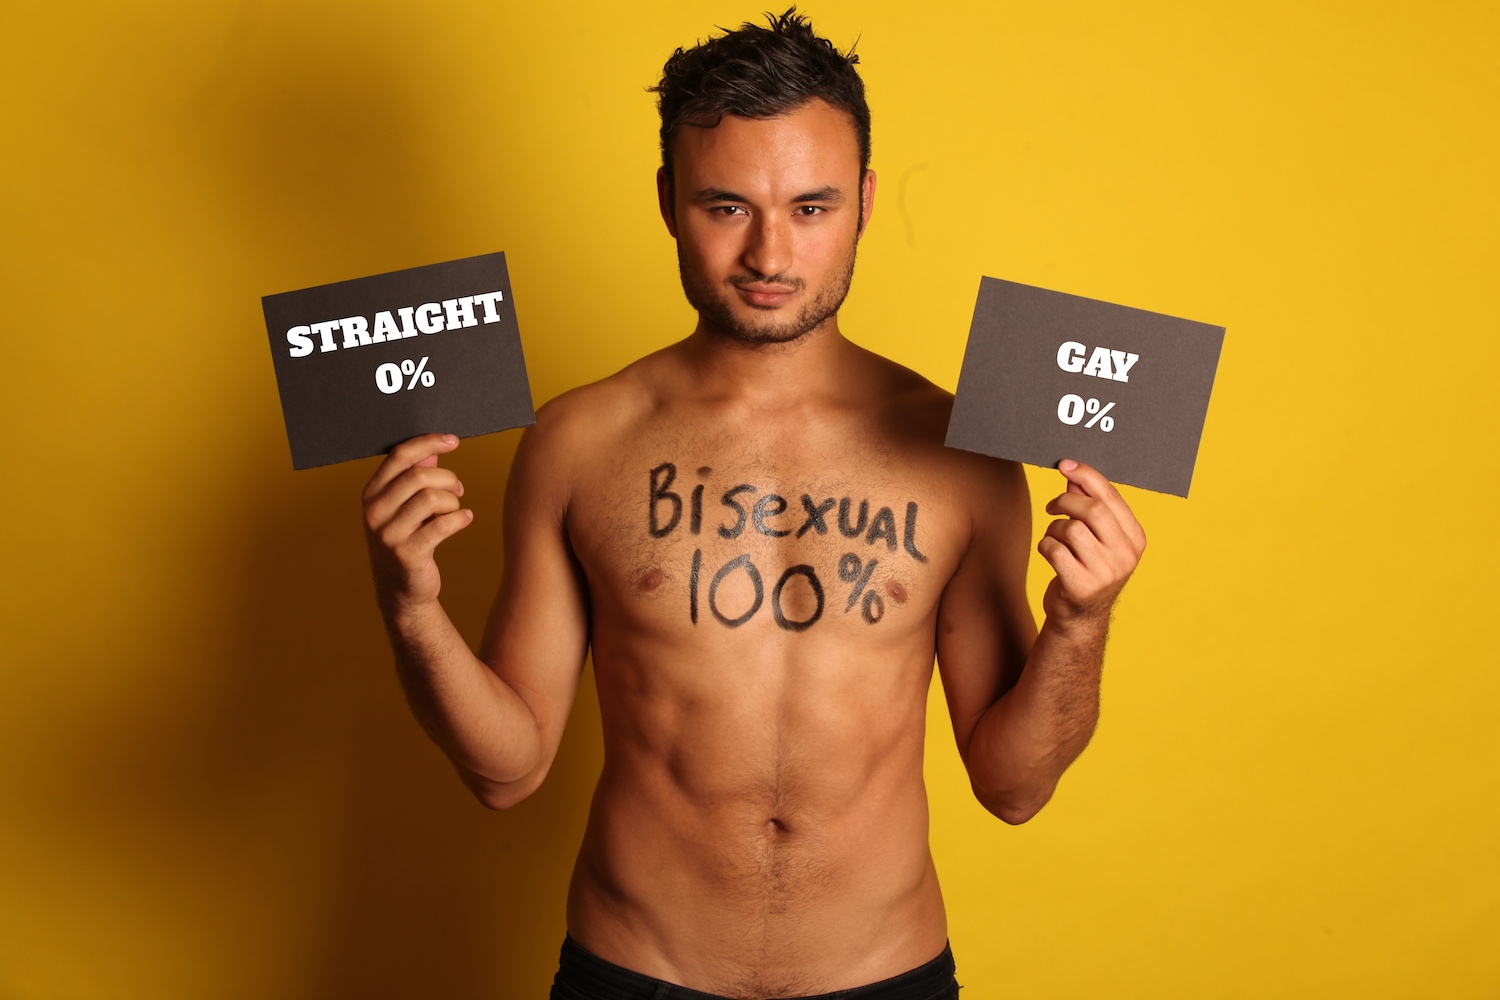 bisexual current gay health in issue lesbian transgender